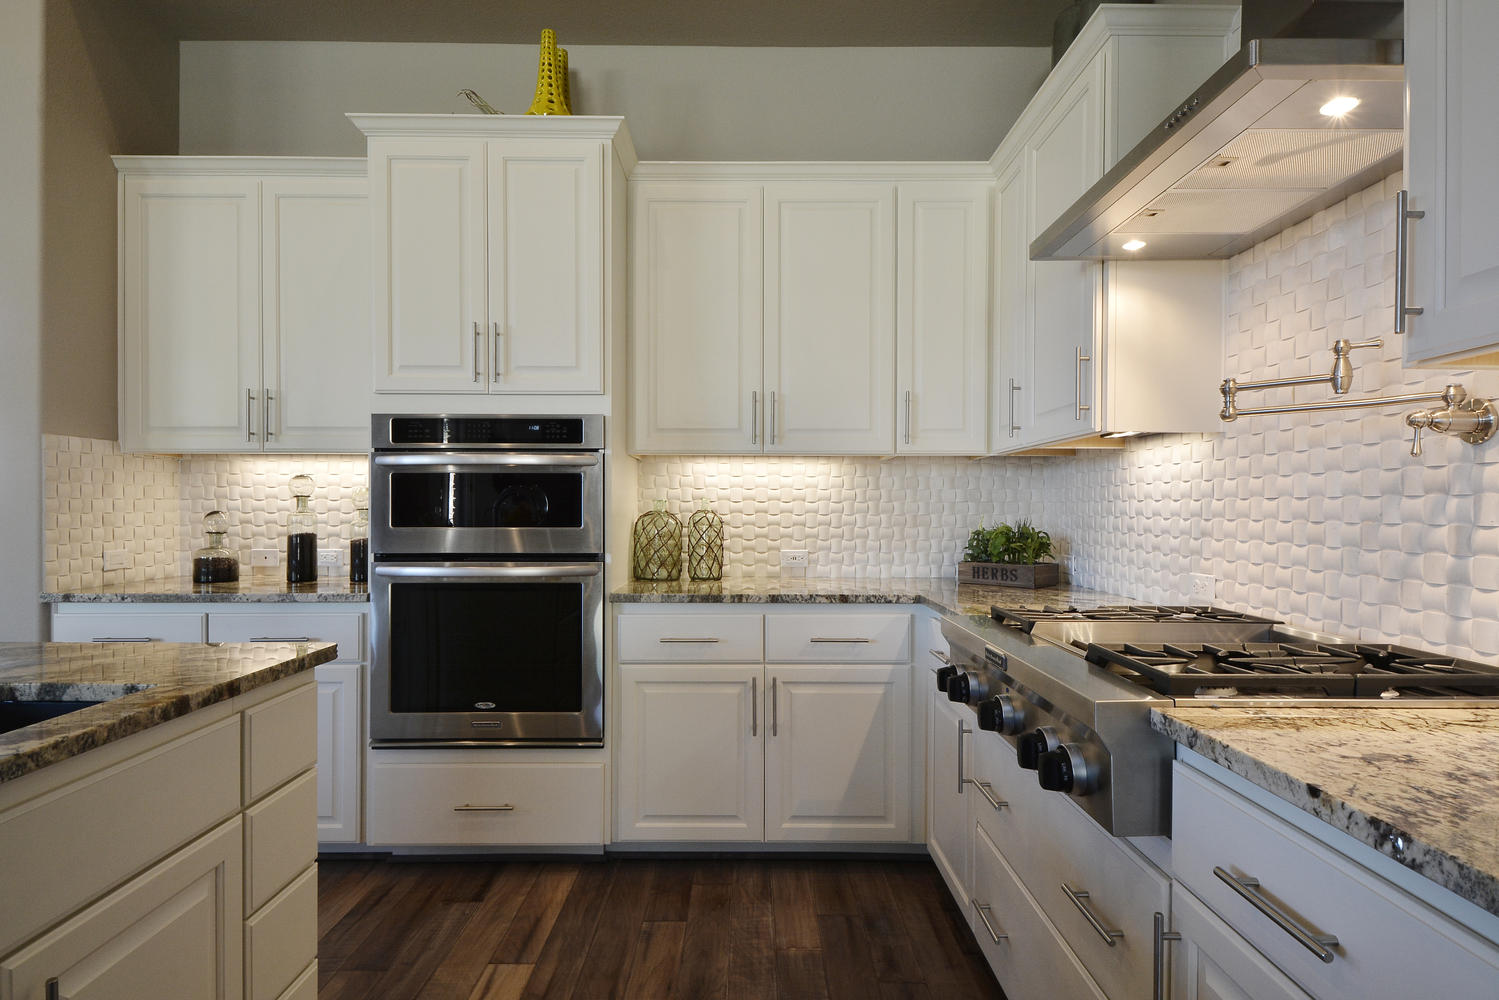 White kitchen cabinets burrows cabinets central texas for Kitchen white cabinets